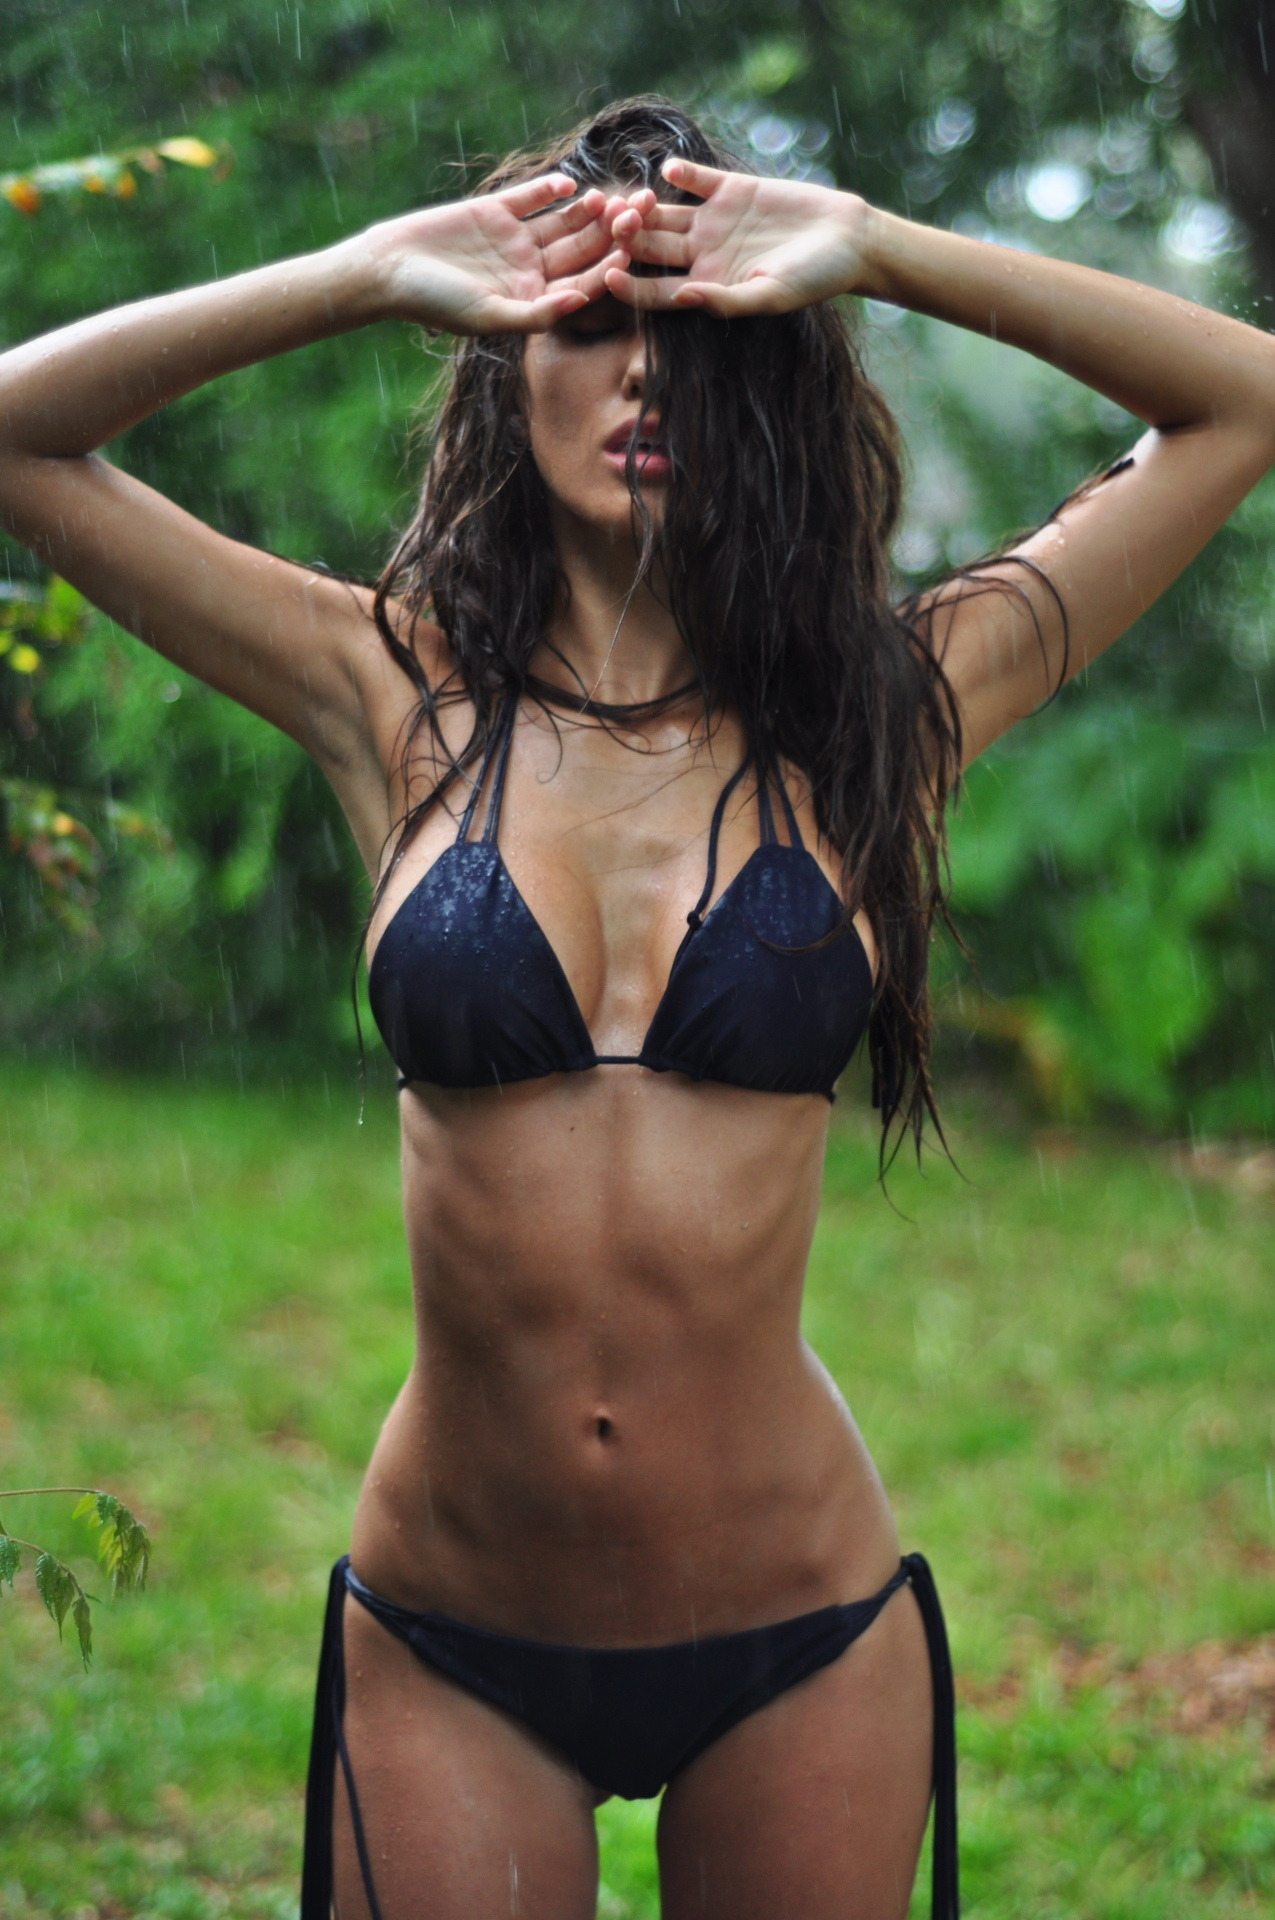 urmoms-chest-hair:  closetomidnight:  pasdesolee:  egyptianb0i:  ashley sky  her body scares me.  skeletor with tits pretty much. Werk it grrrh.  her hips are too big but otherwise she's perf  how is that possible?